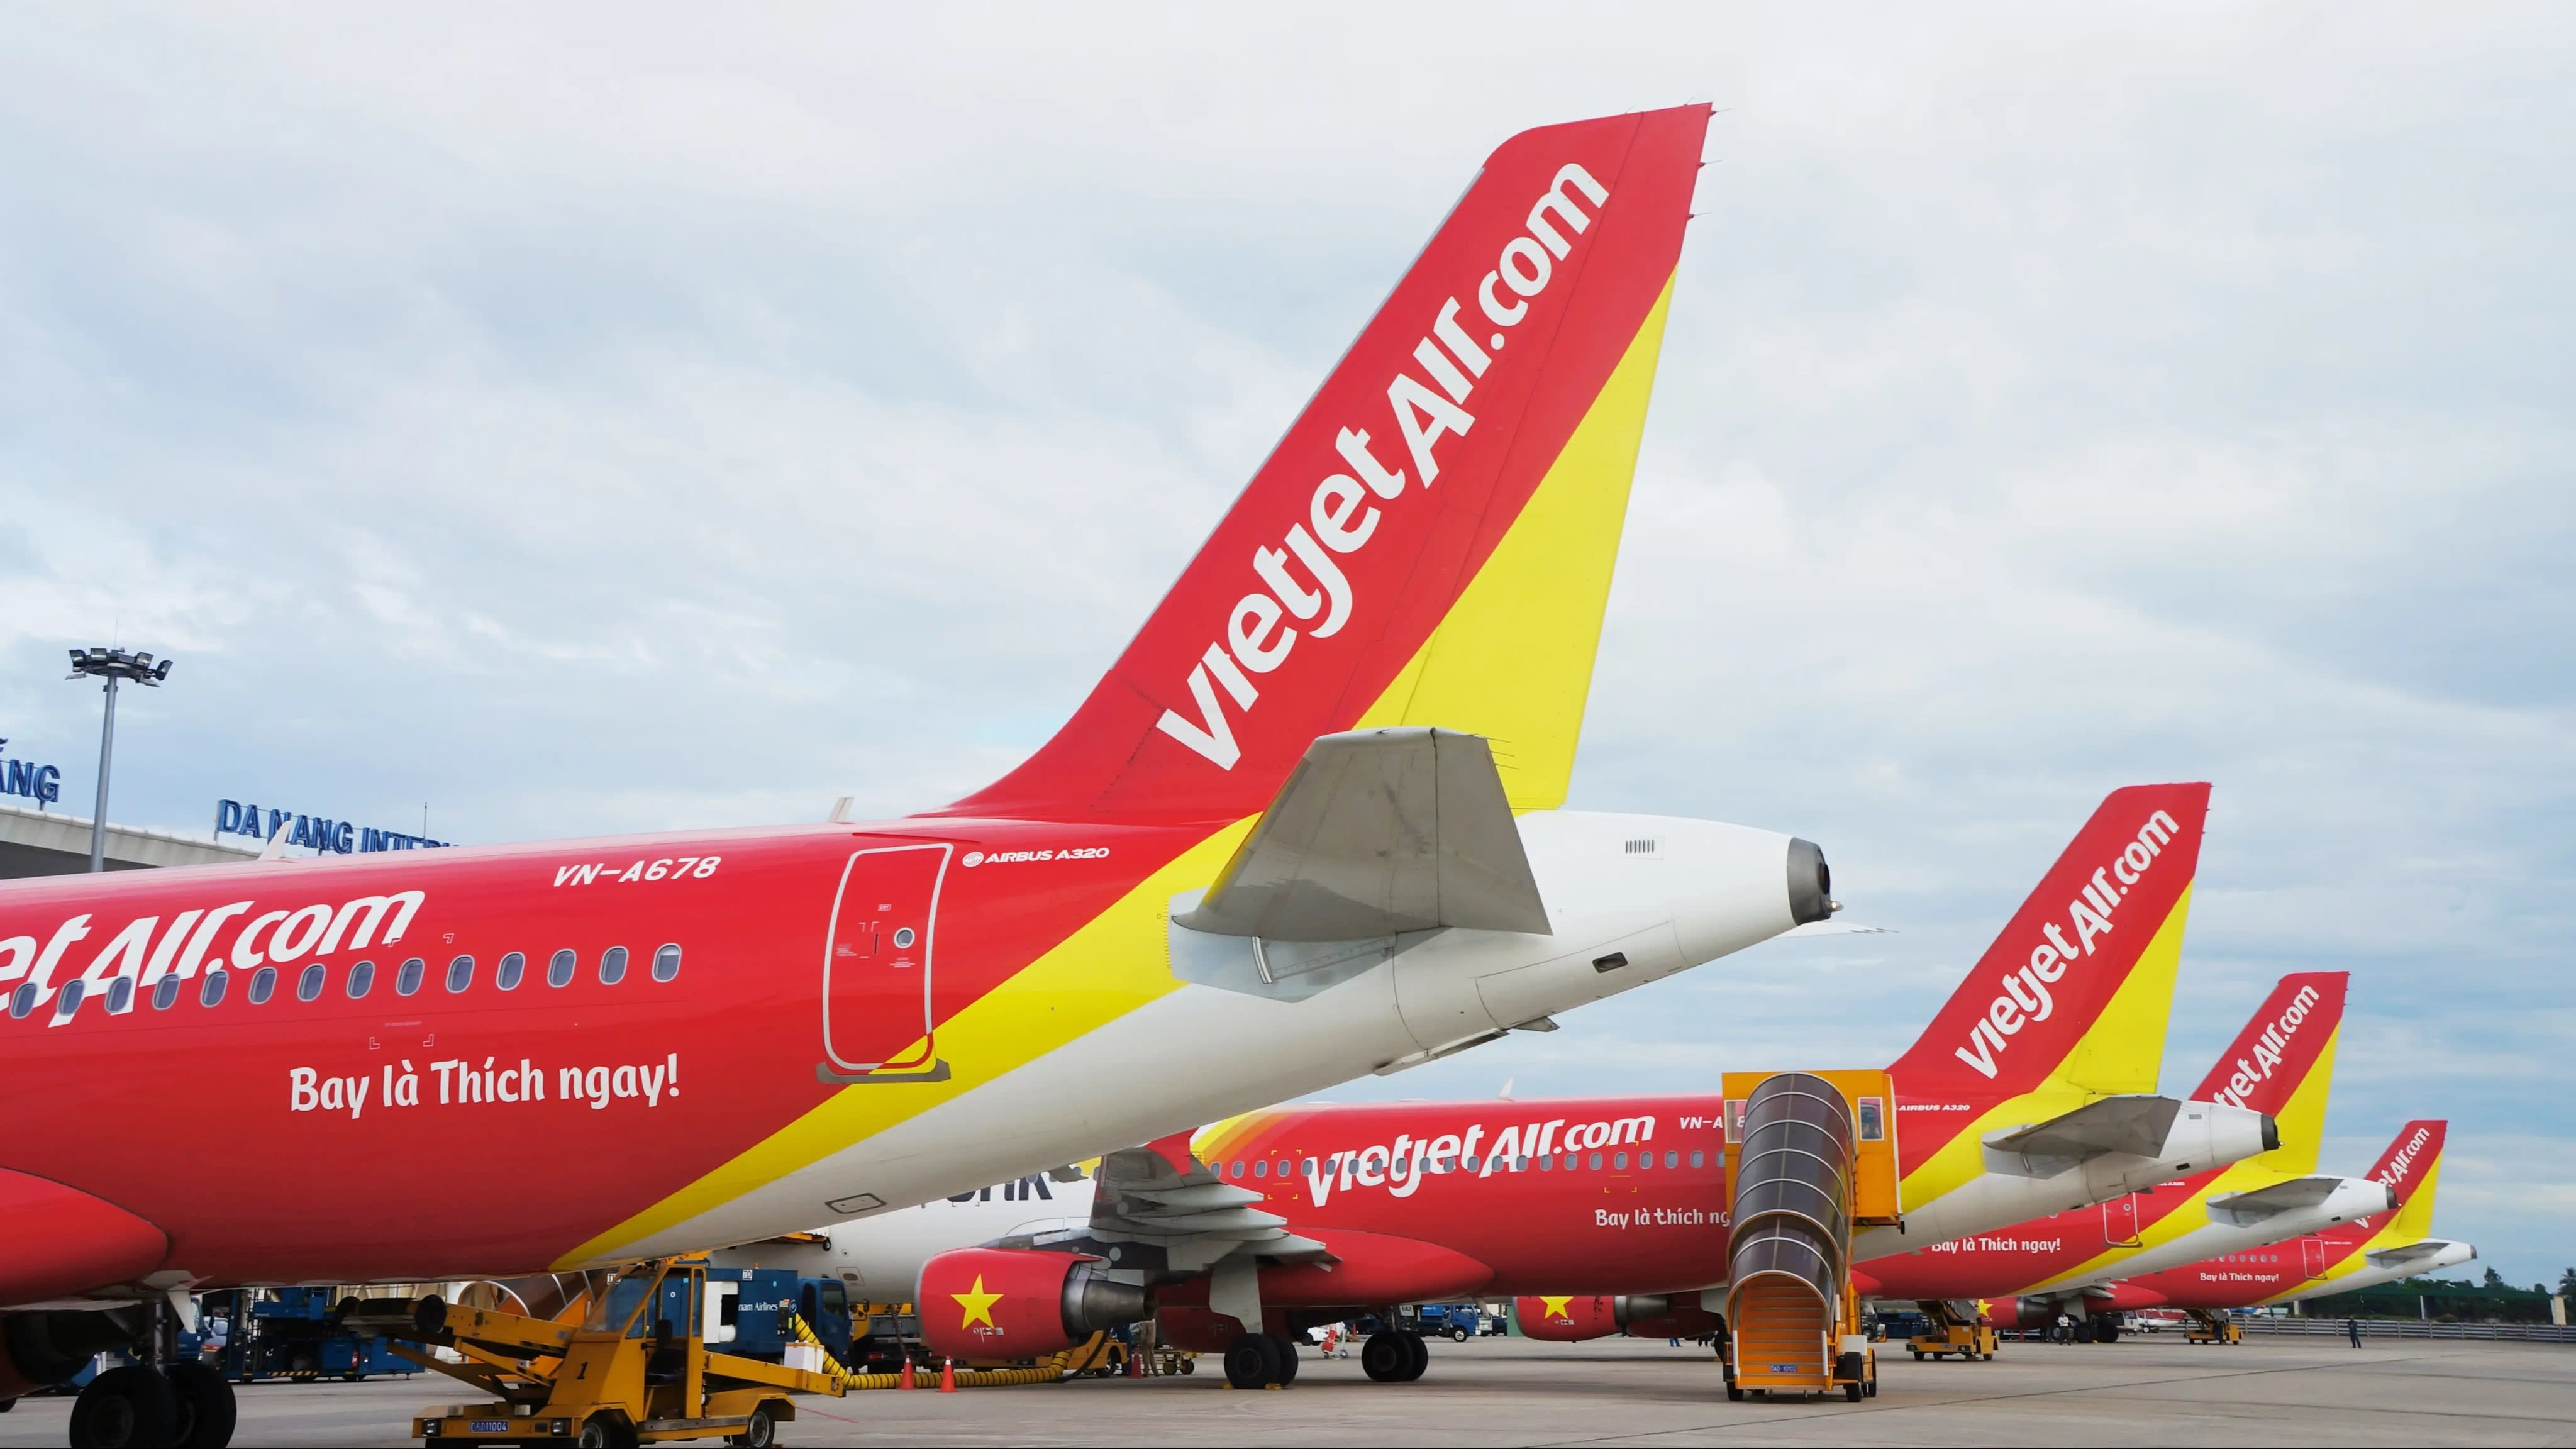 Budget airline Vietjet's fleet includes 60 Airbus A320 and A321 craft. Image: Nikkei Asian Review